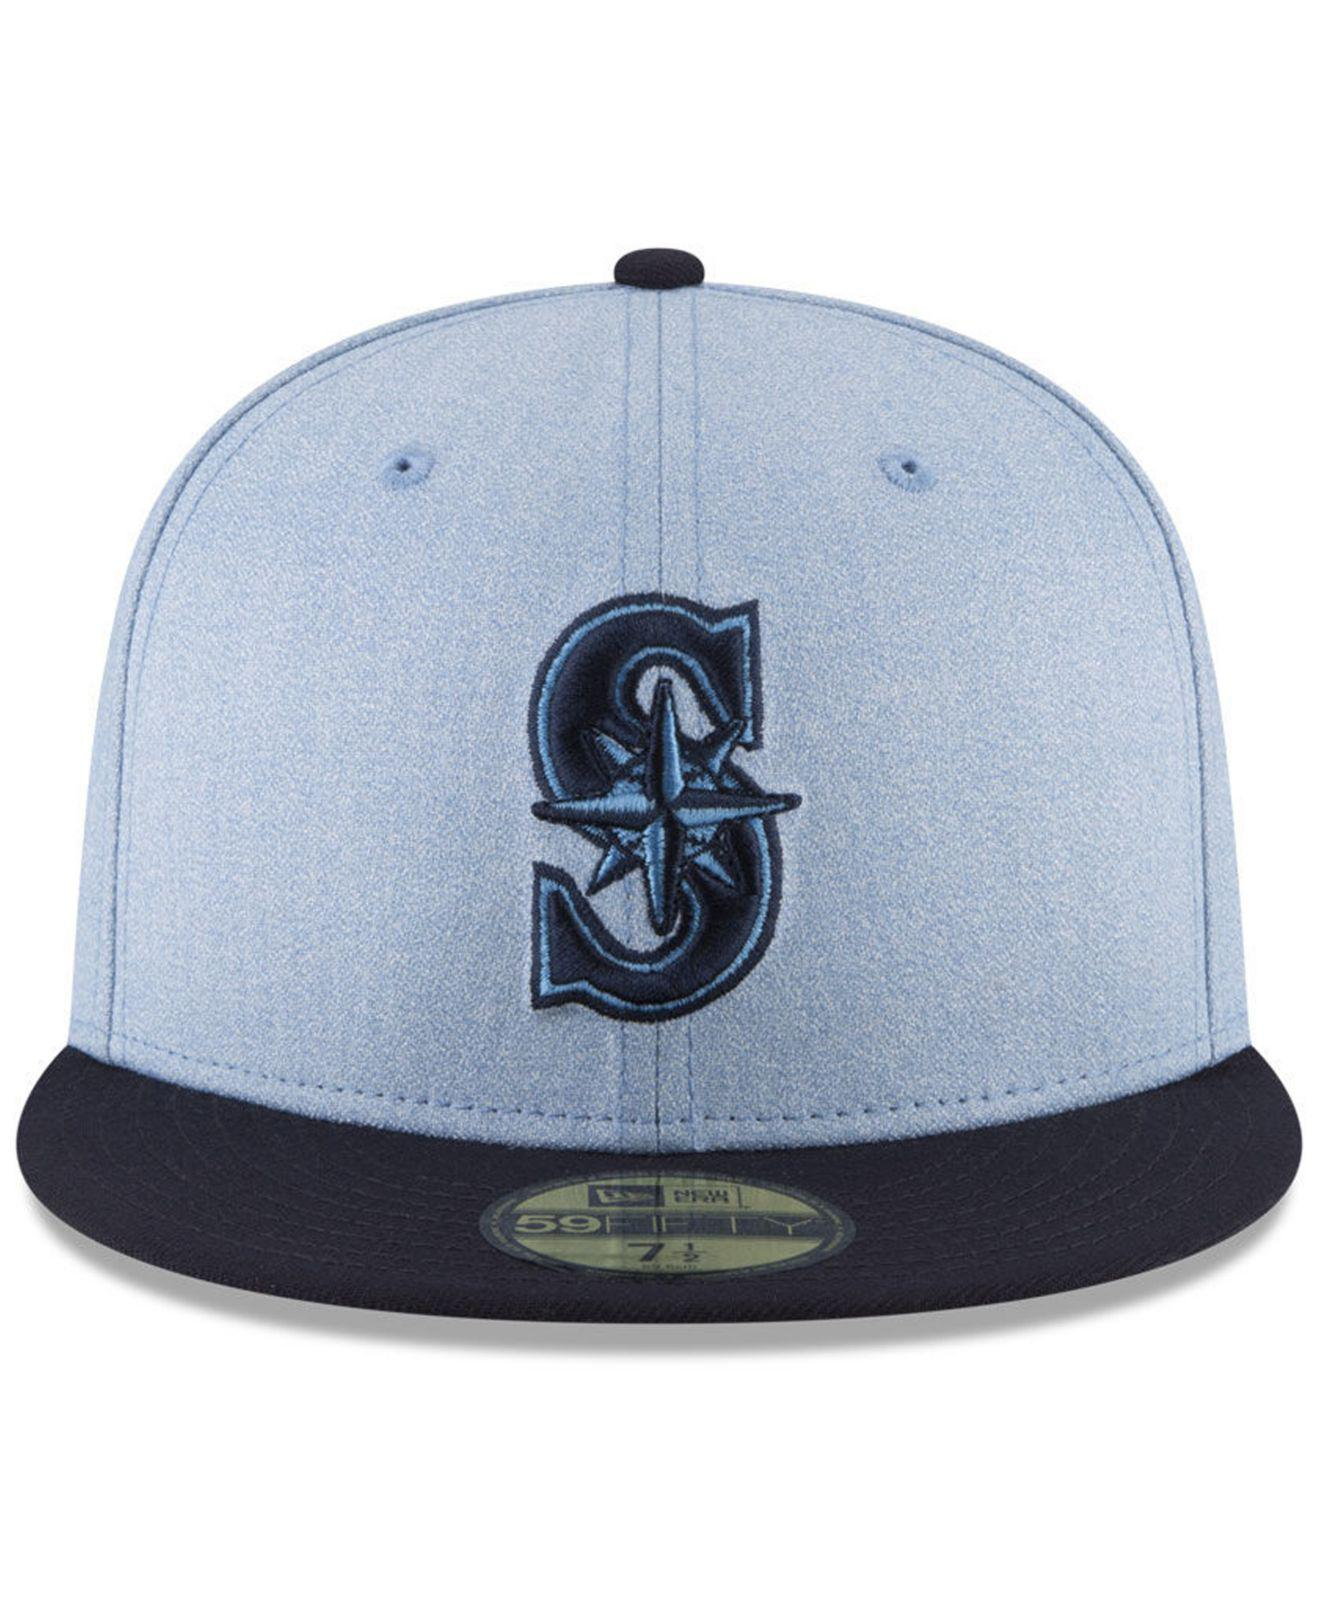 fae73e6ad ... new york mets mlb core classic 39thirty cap royalblue 89dbd 69f2a; shop lyst  ktz seattle mariners fathers day 59fifty fitted cap 2018 in blue for men ...